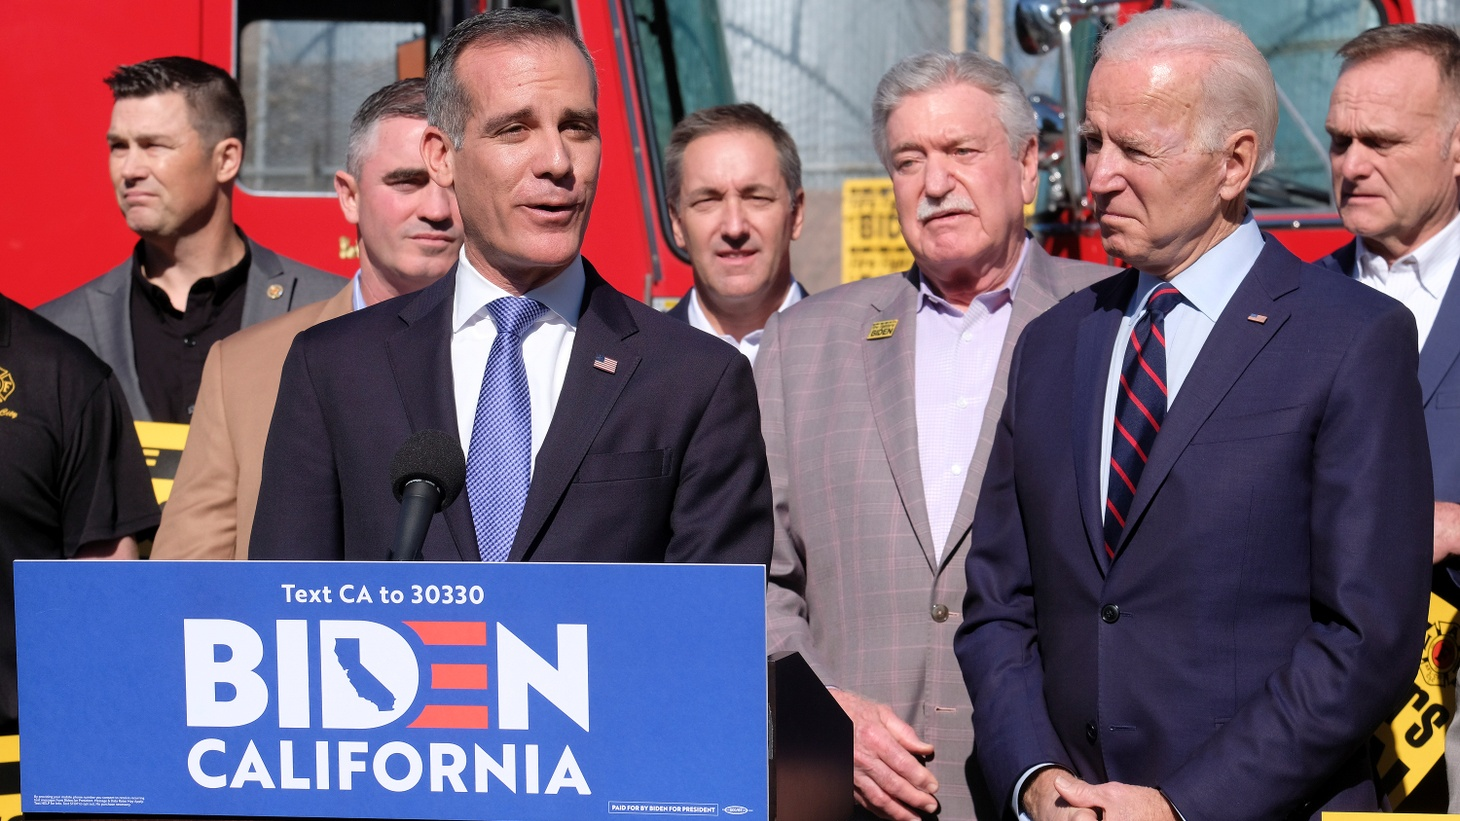 Democratic 2020 U.S. presidential candidate Joe Biden and Los Angeles Mayor Eric Garcetti visit the United Firefighters of Los Angeles City headquarters in Los Angeles, California, U.S., January 10, 2020.